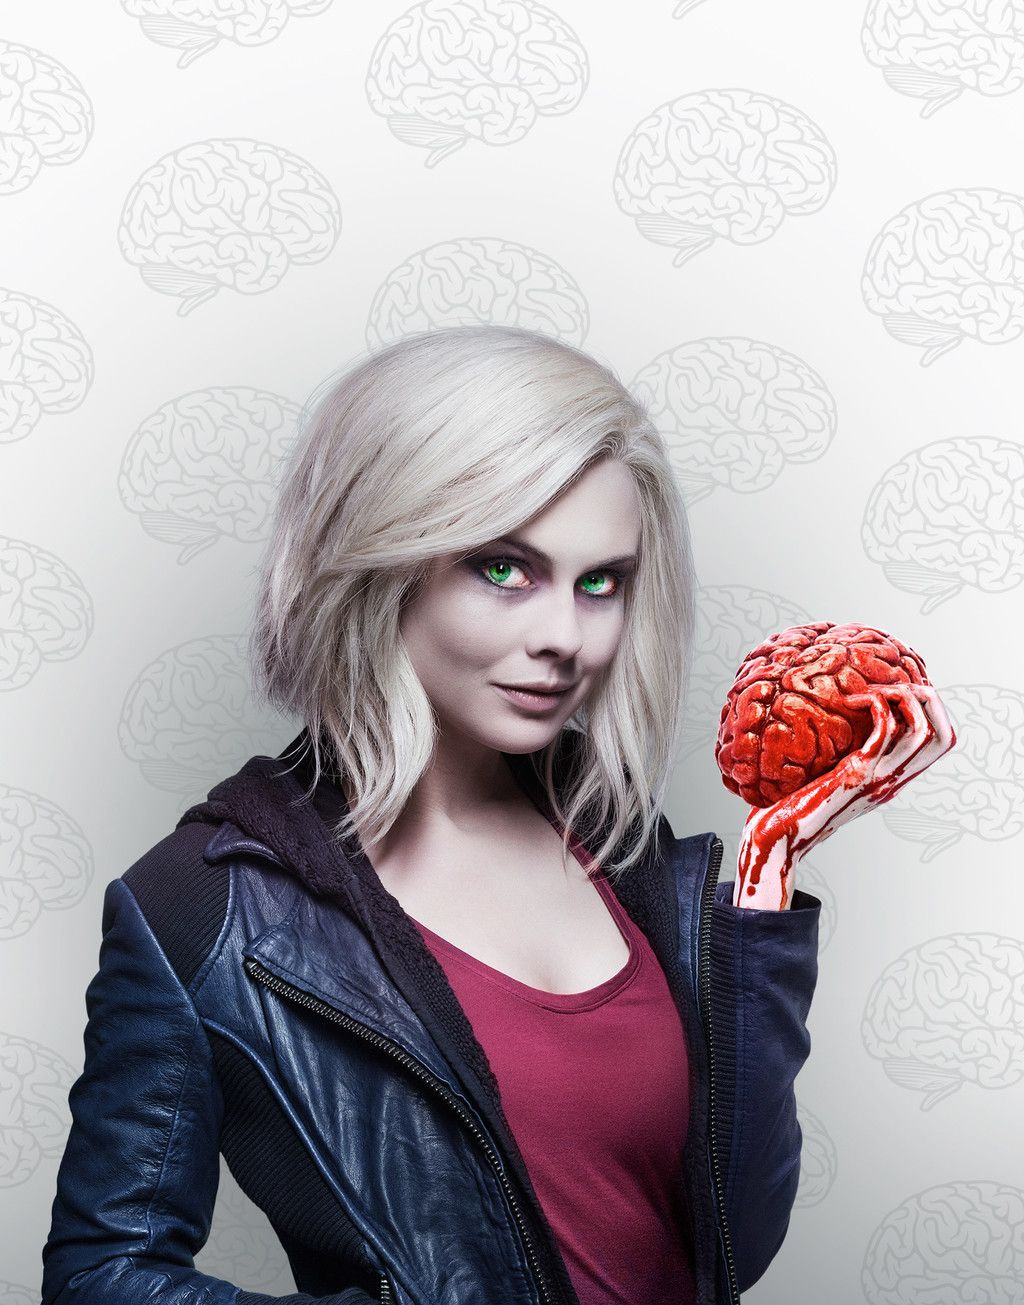 1024x1305 - Rose McIver Wallpapers 19